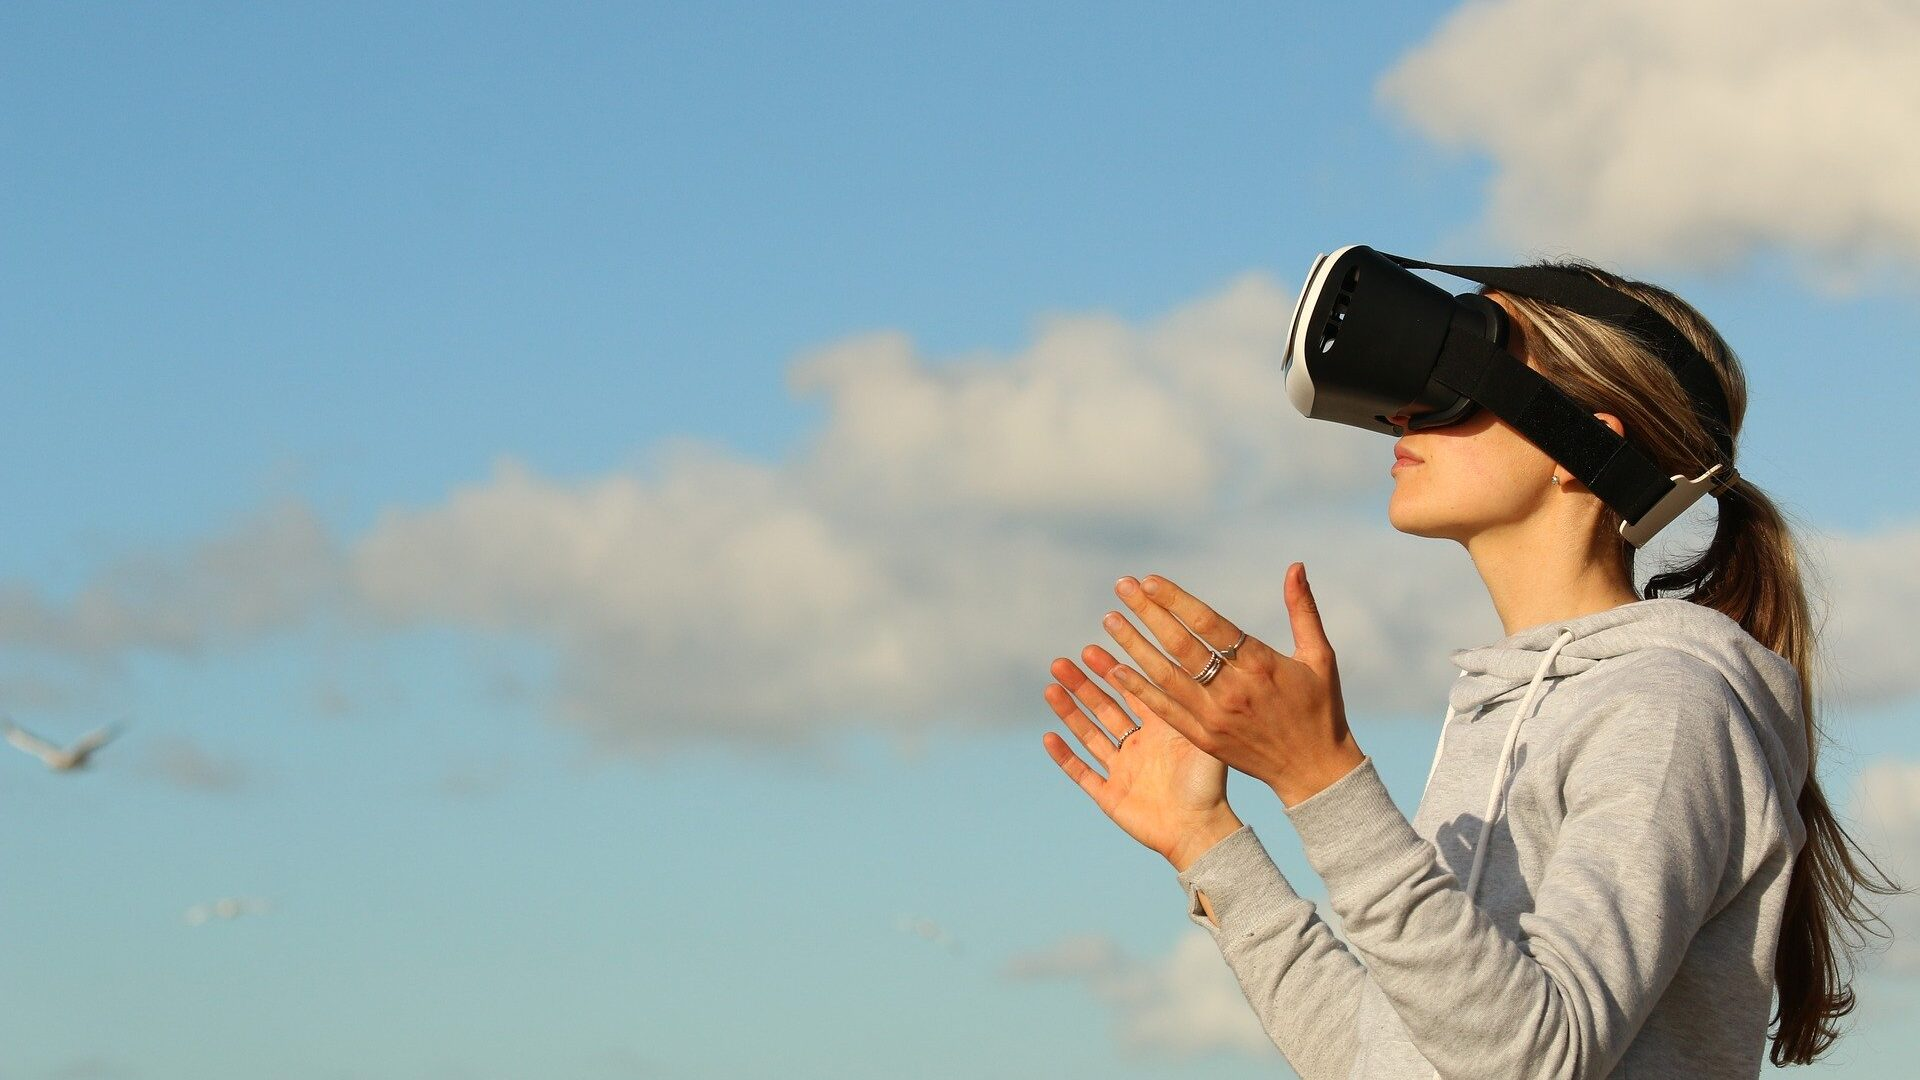 Virtual reality provides the user with a completely immersive experience.